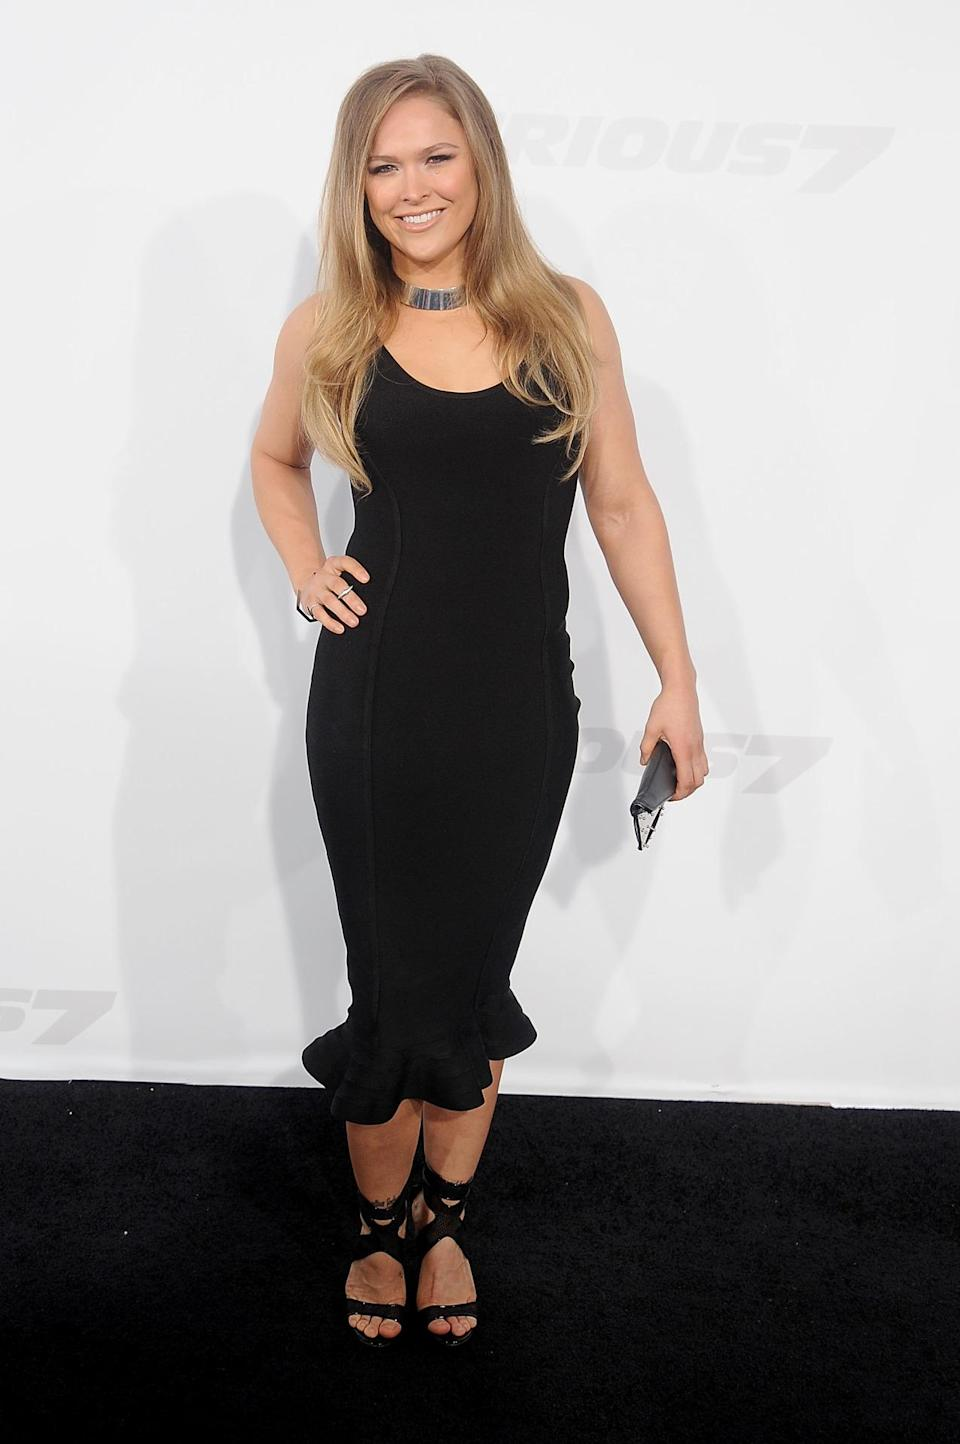 """The UFC champion is rarely seen out of fighting form, but at the """"Furious 7"""" premiere she showed off her fashion chops in a form-fitting mid-length black dress accompanied with a very '90s silver metal choker (very appropriate for a choke holder, no?)."""